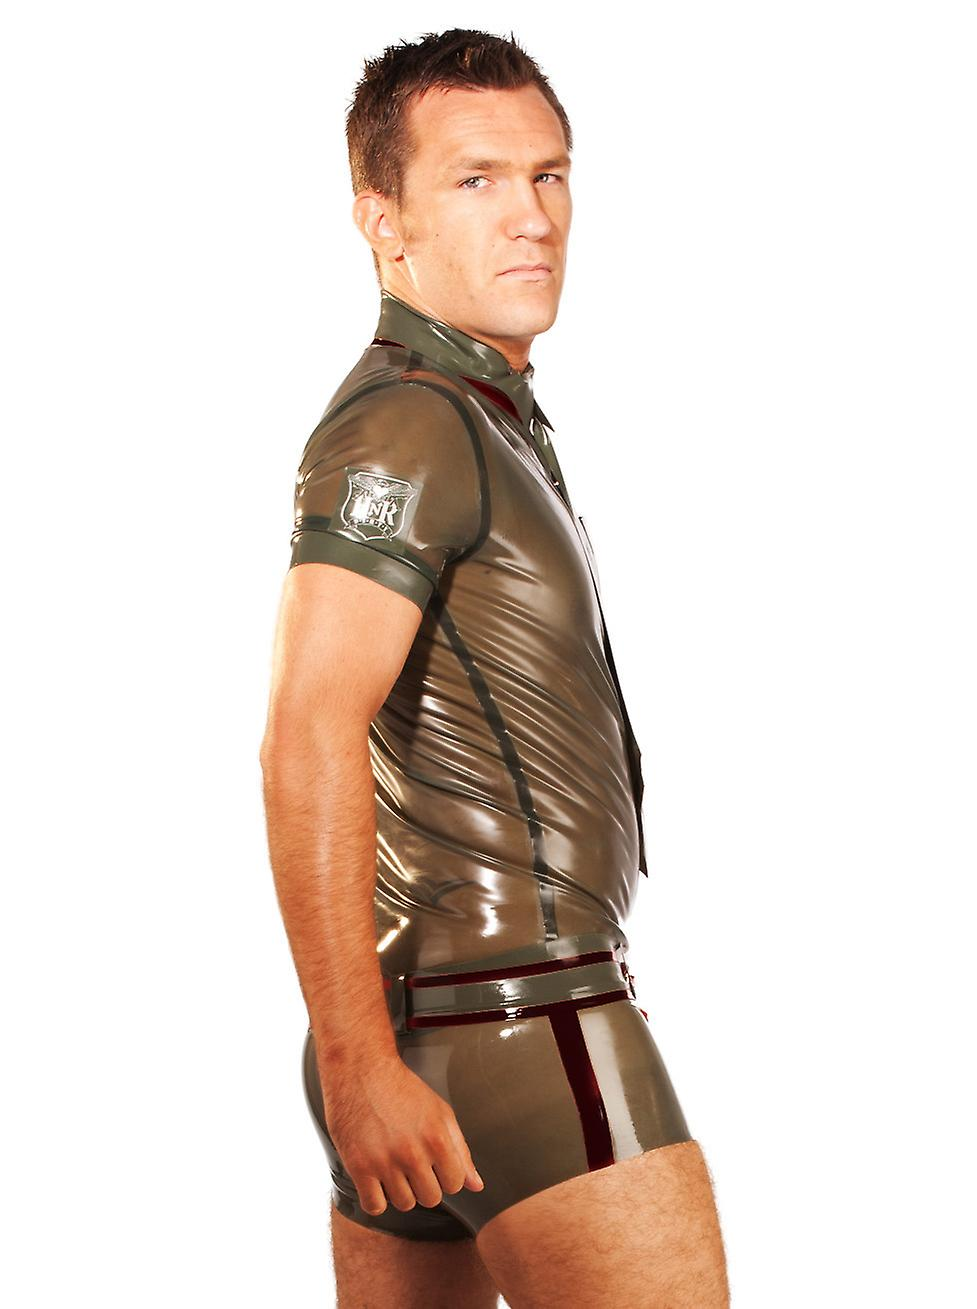 Honour Men's Shorts in Rubber Green & Black Sexy Military Style Costume